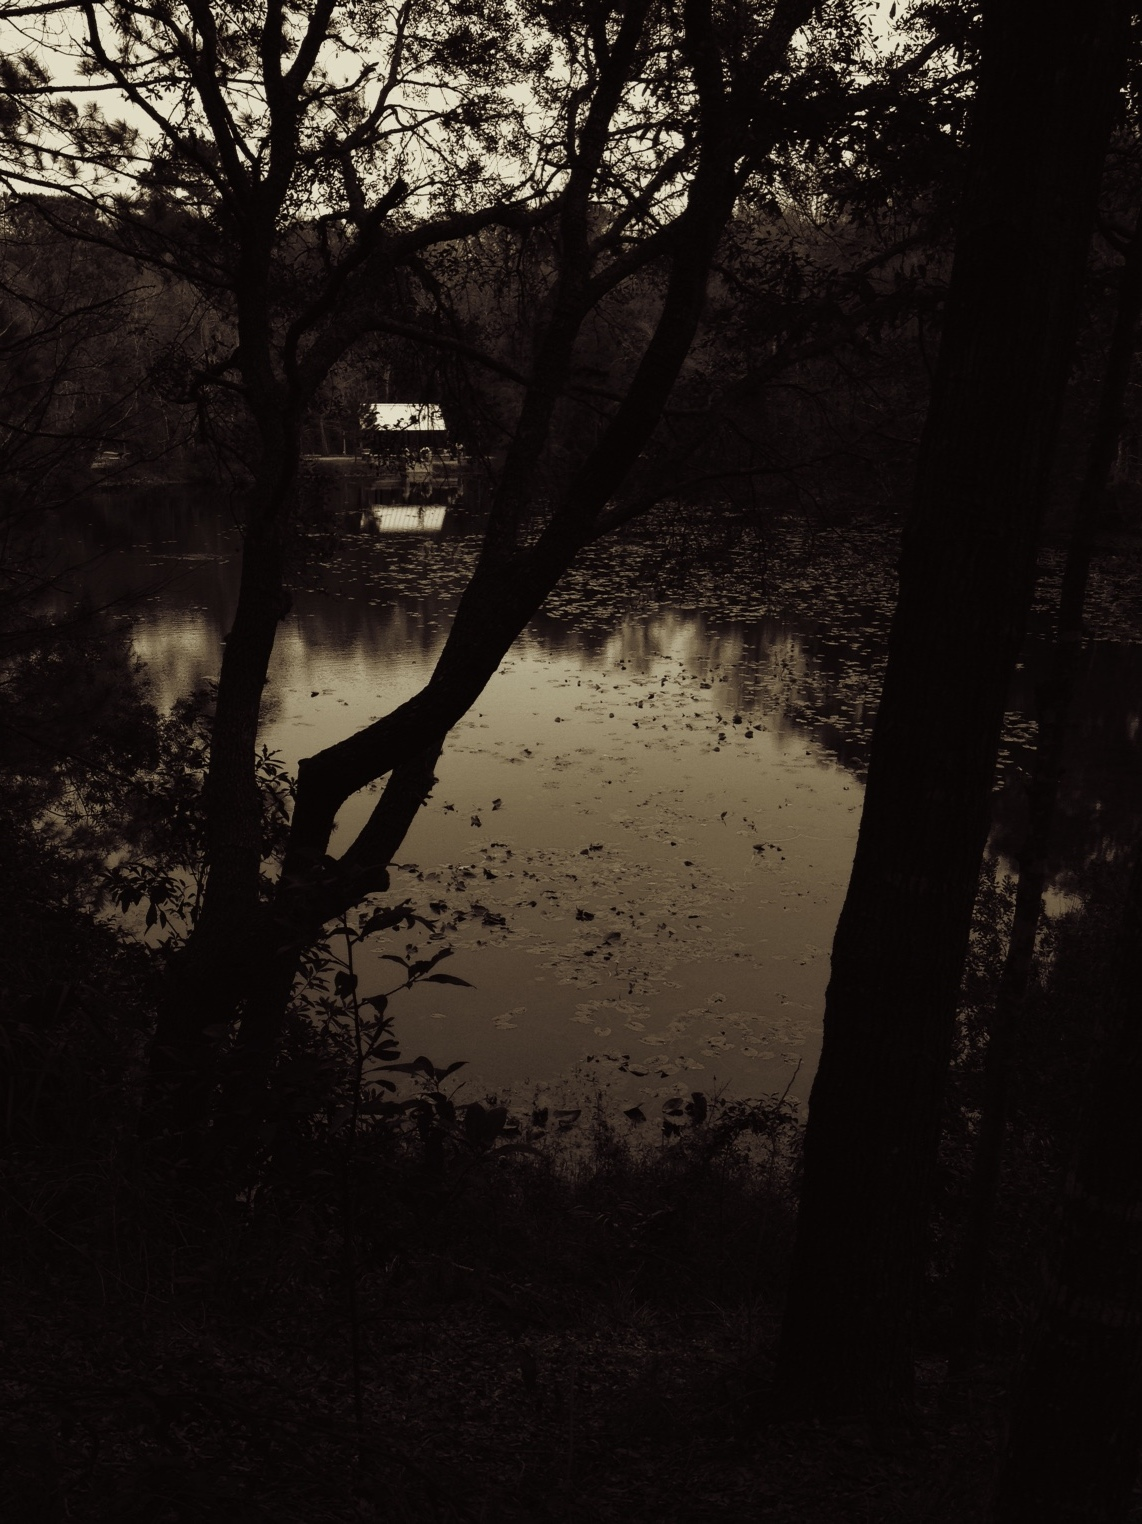 Last of the sepia light